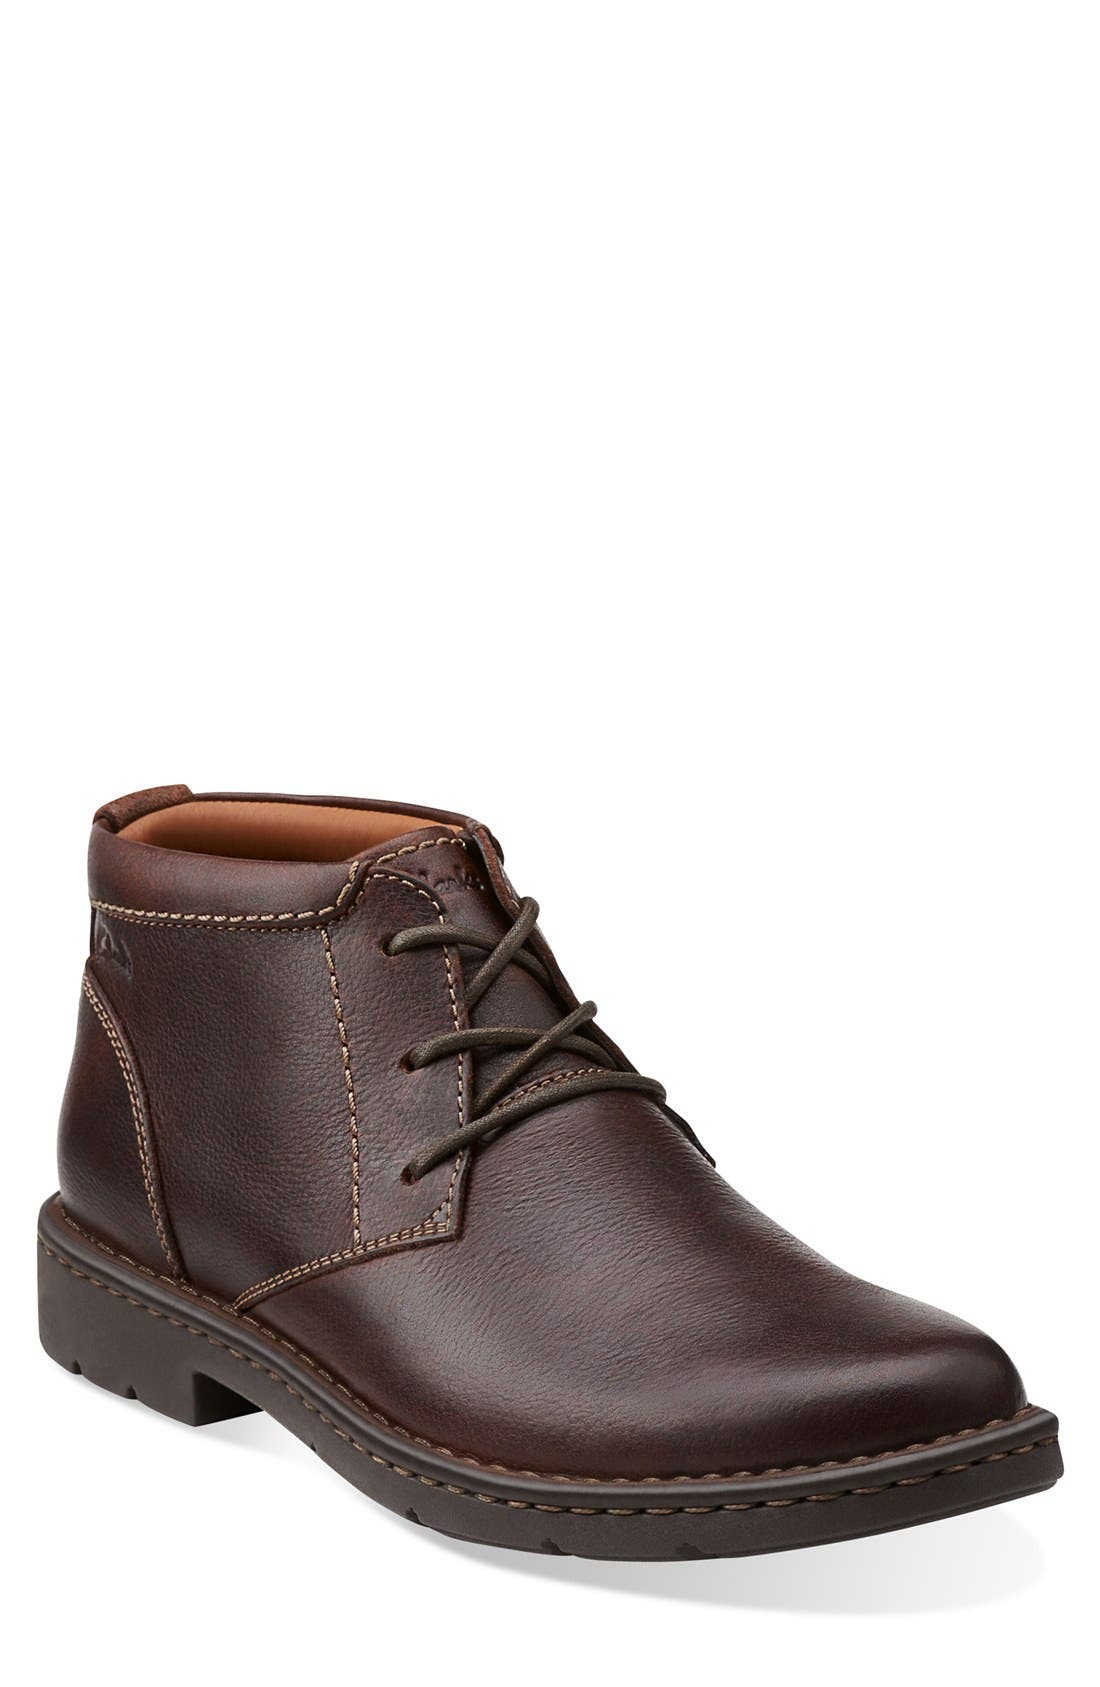 Main Image - Clarks® 'Stratton - Limit' Plain Toe Boot (Men)